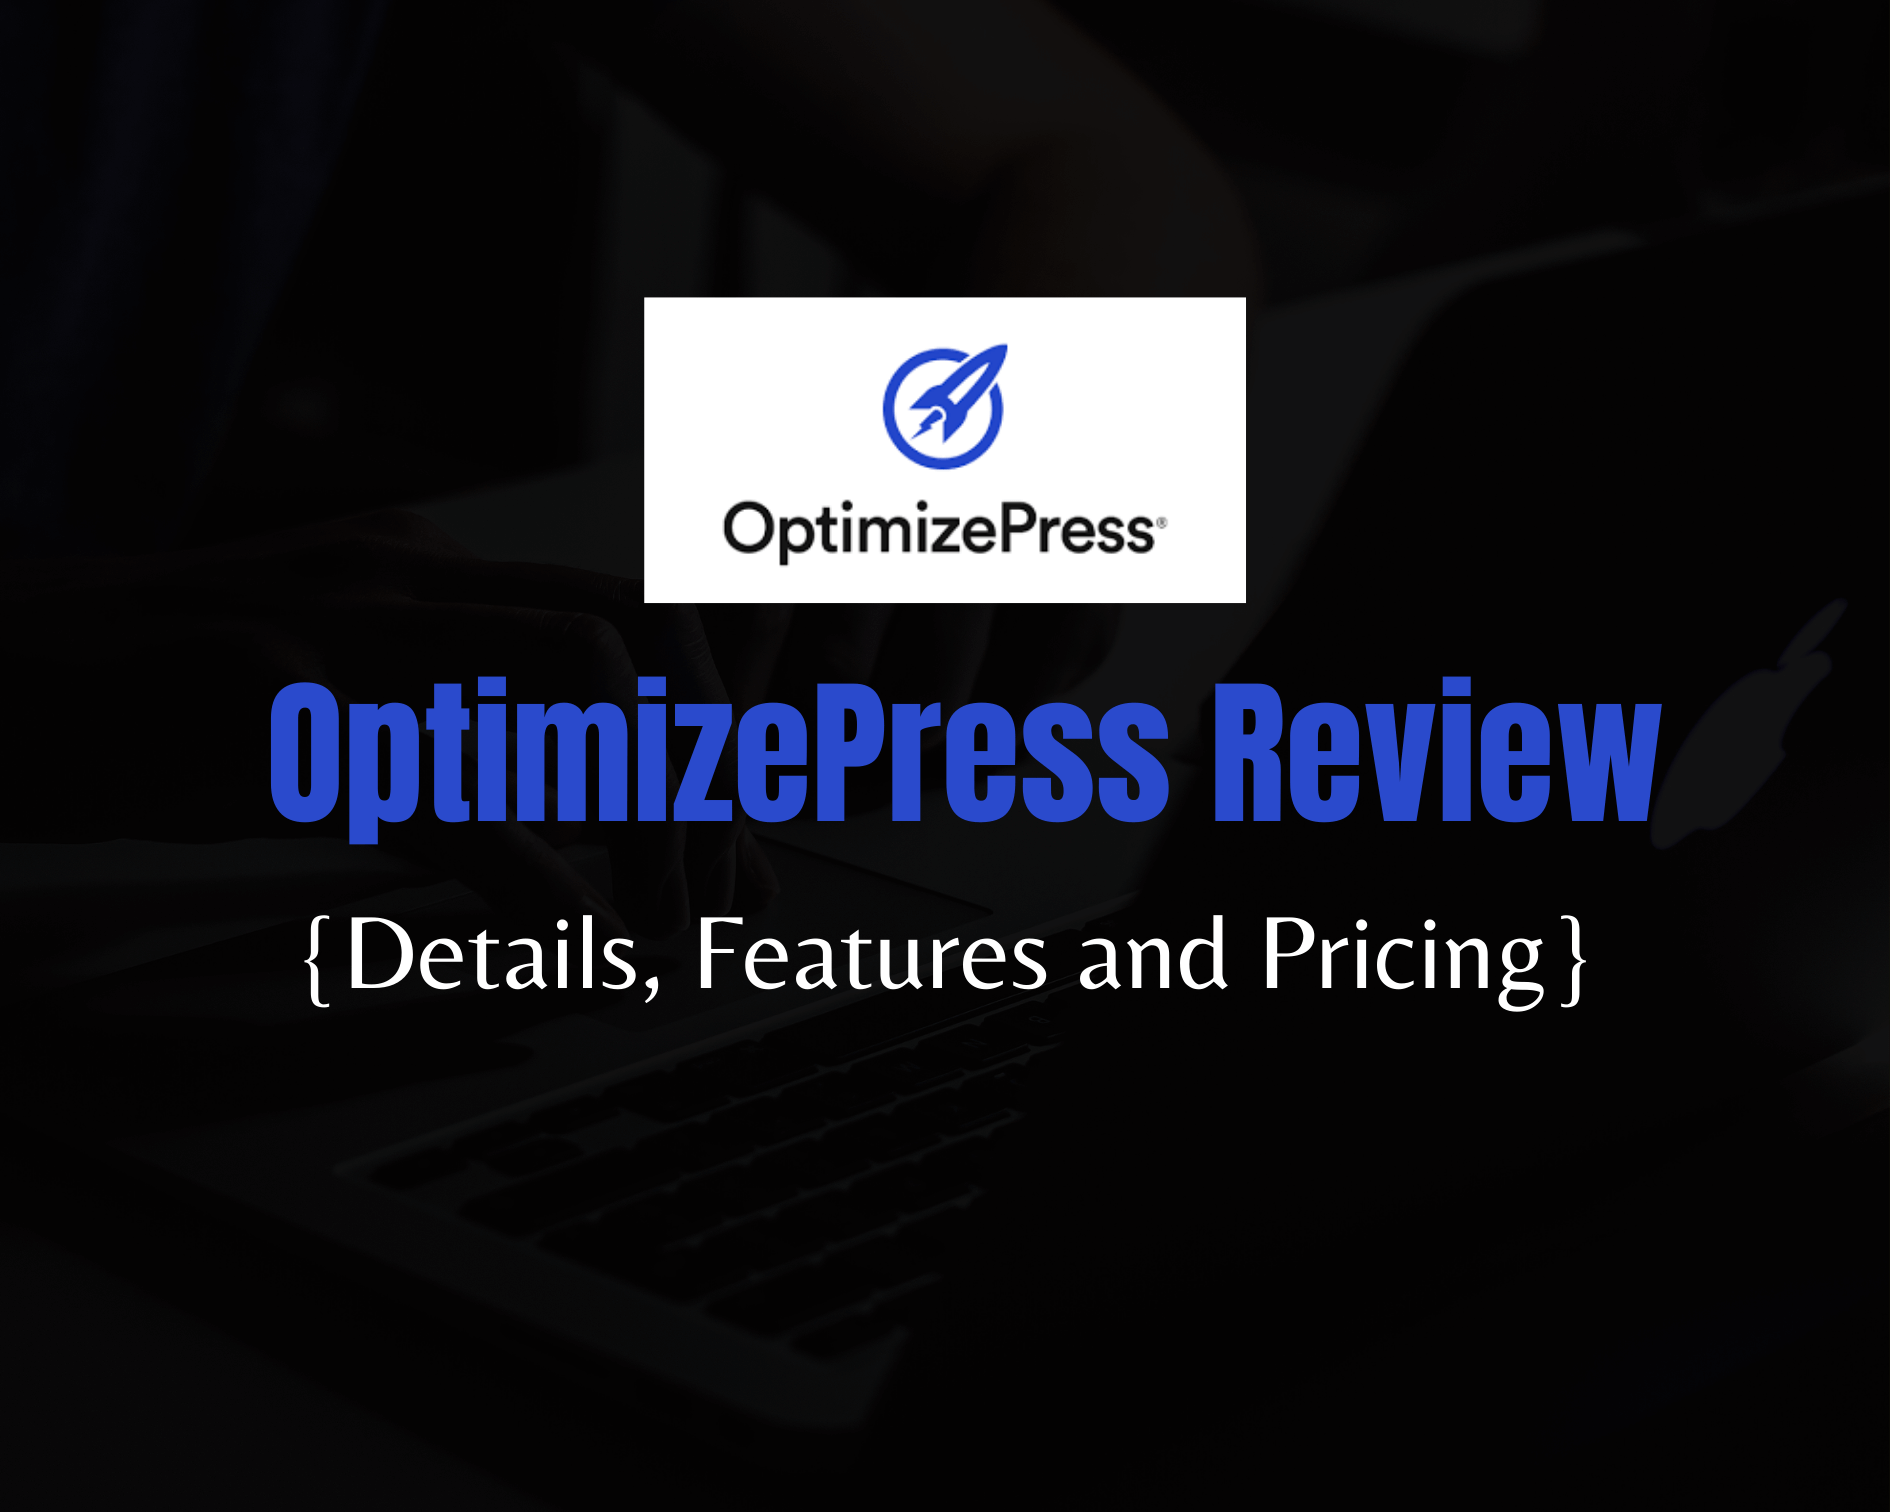 OptimizePress Review 2020: An Affordable Landing Page Builder